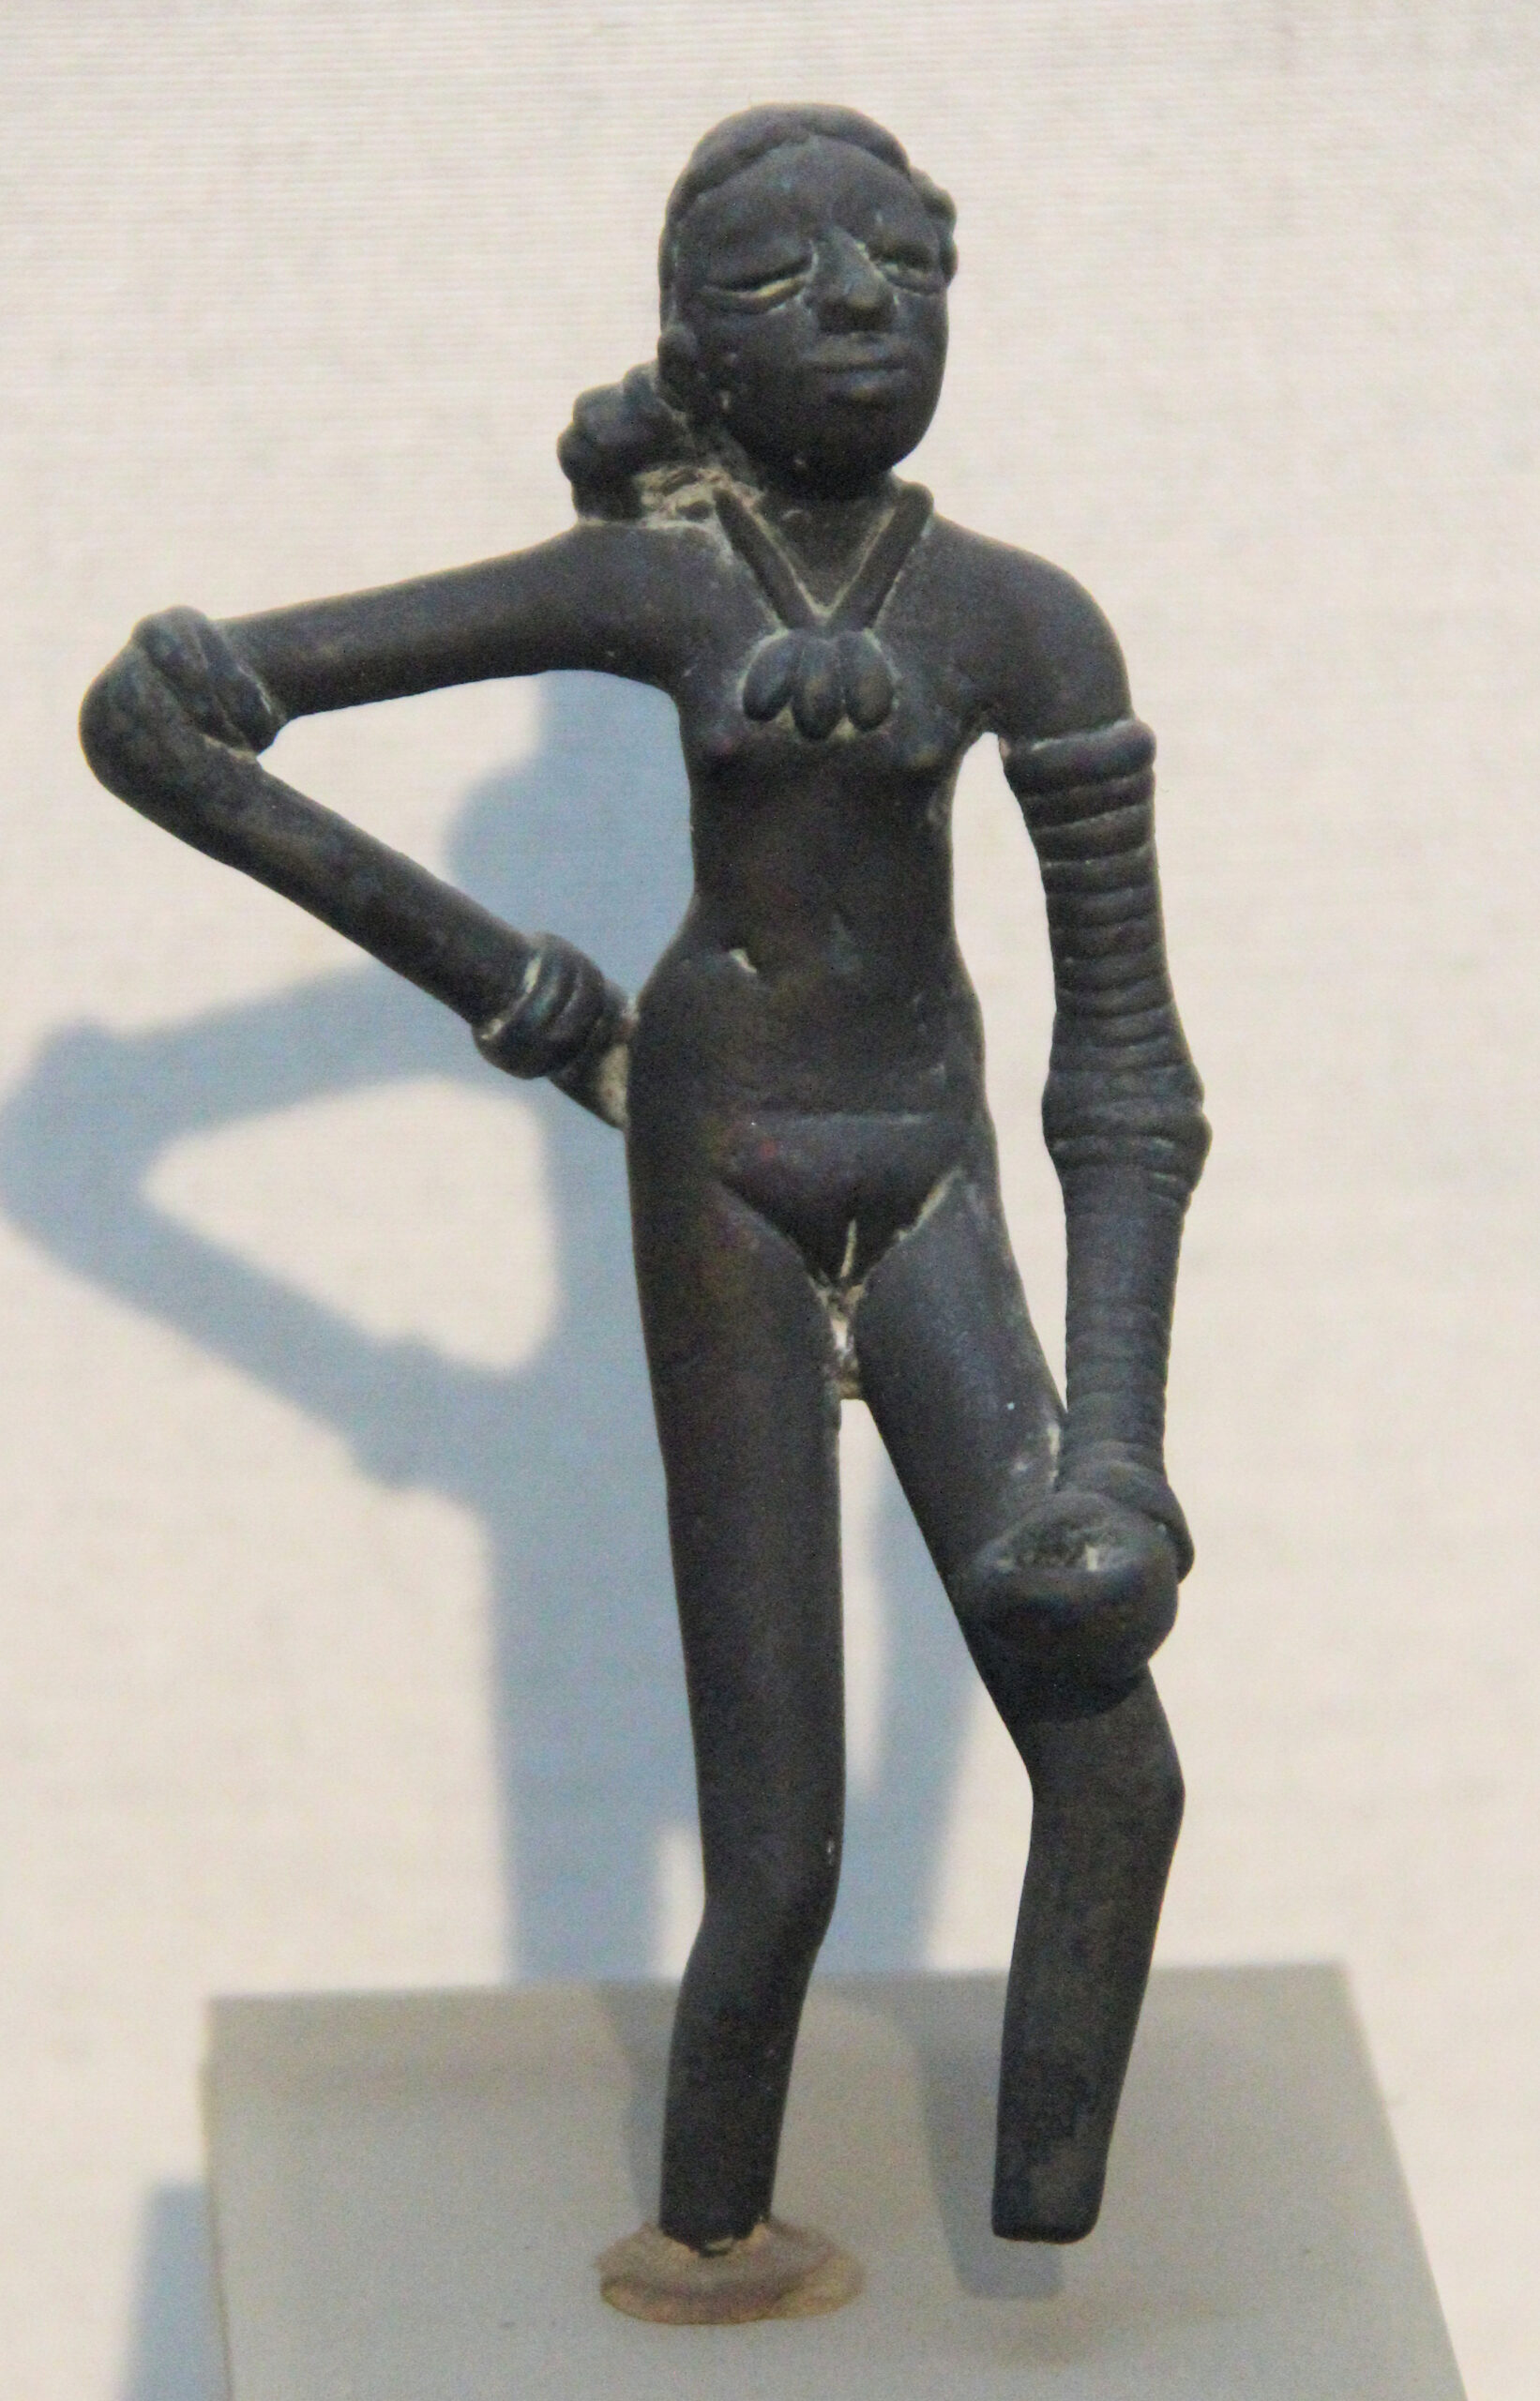 Wood or Broze sculpture? Photo shows the bronze sculpture of dancing girl of mohenjo-daro